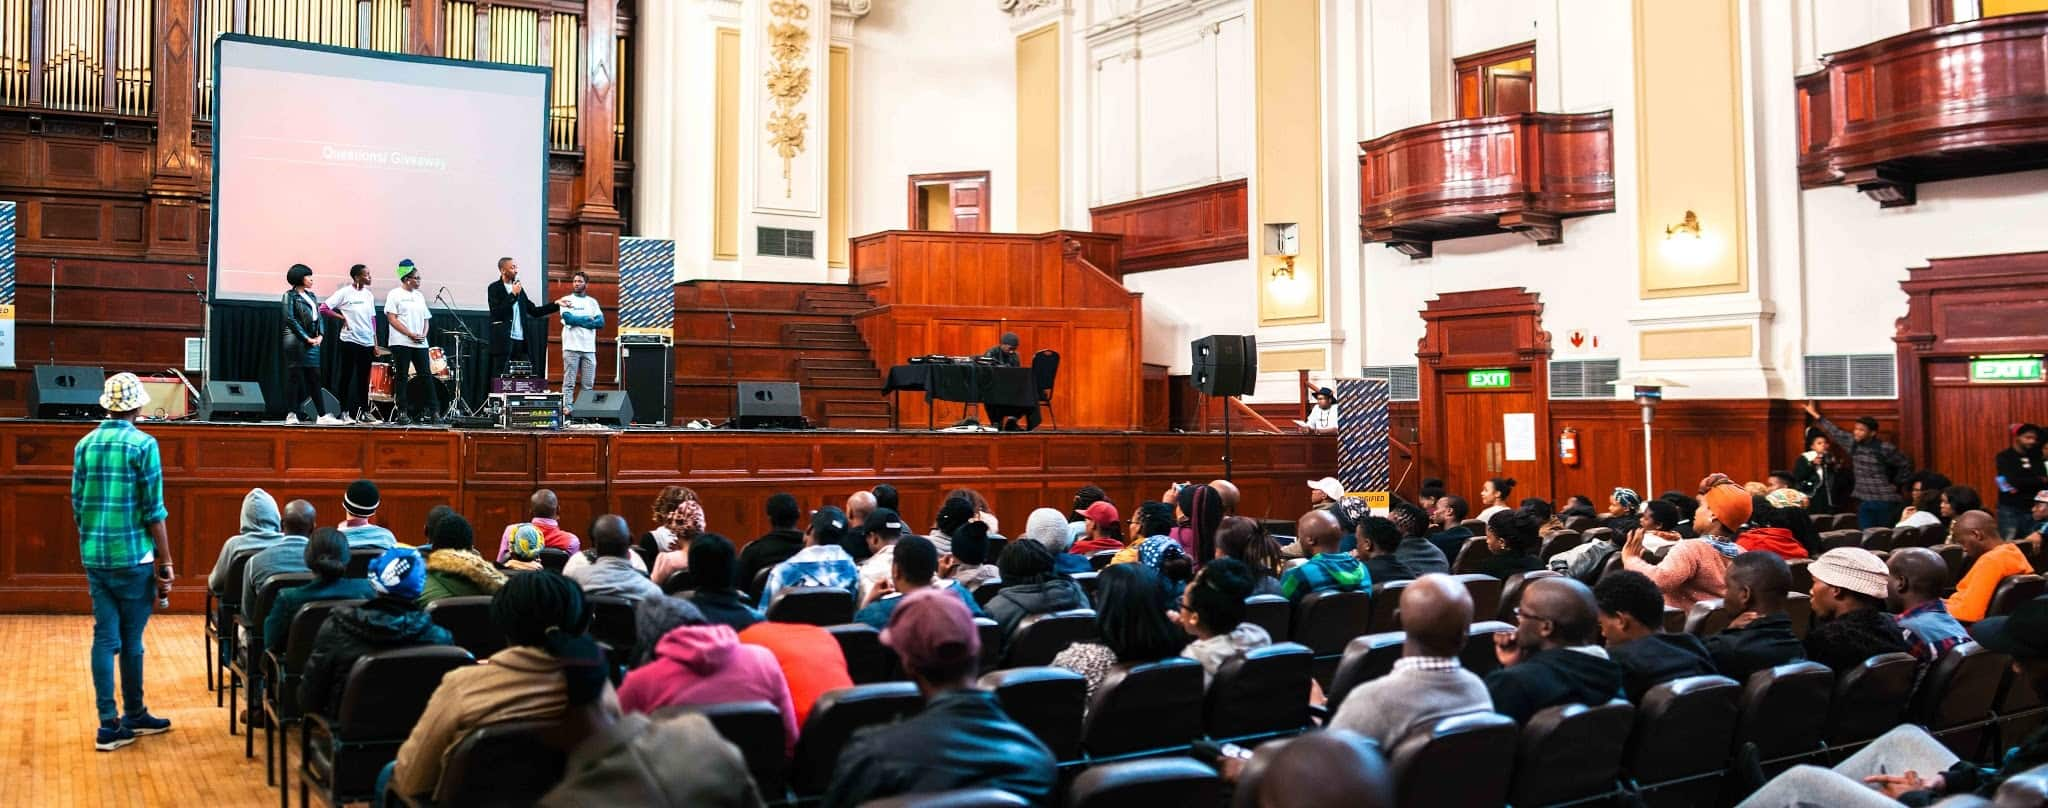 A recent Digital Skills training session at City Hall in Johannesburg, S. Africa